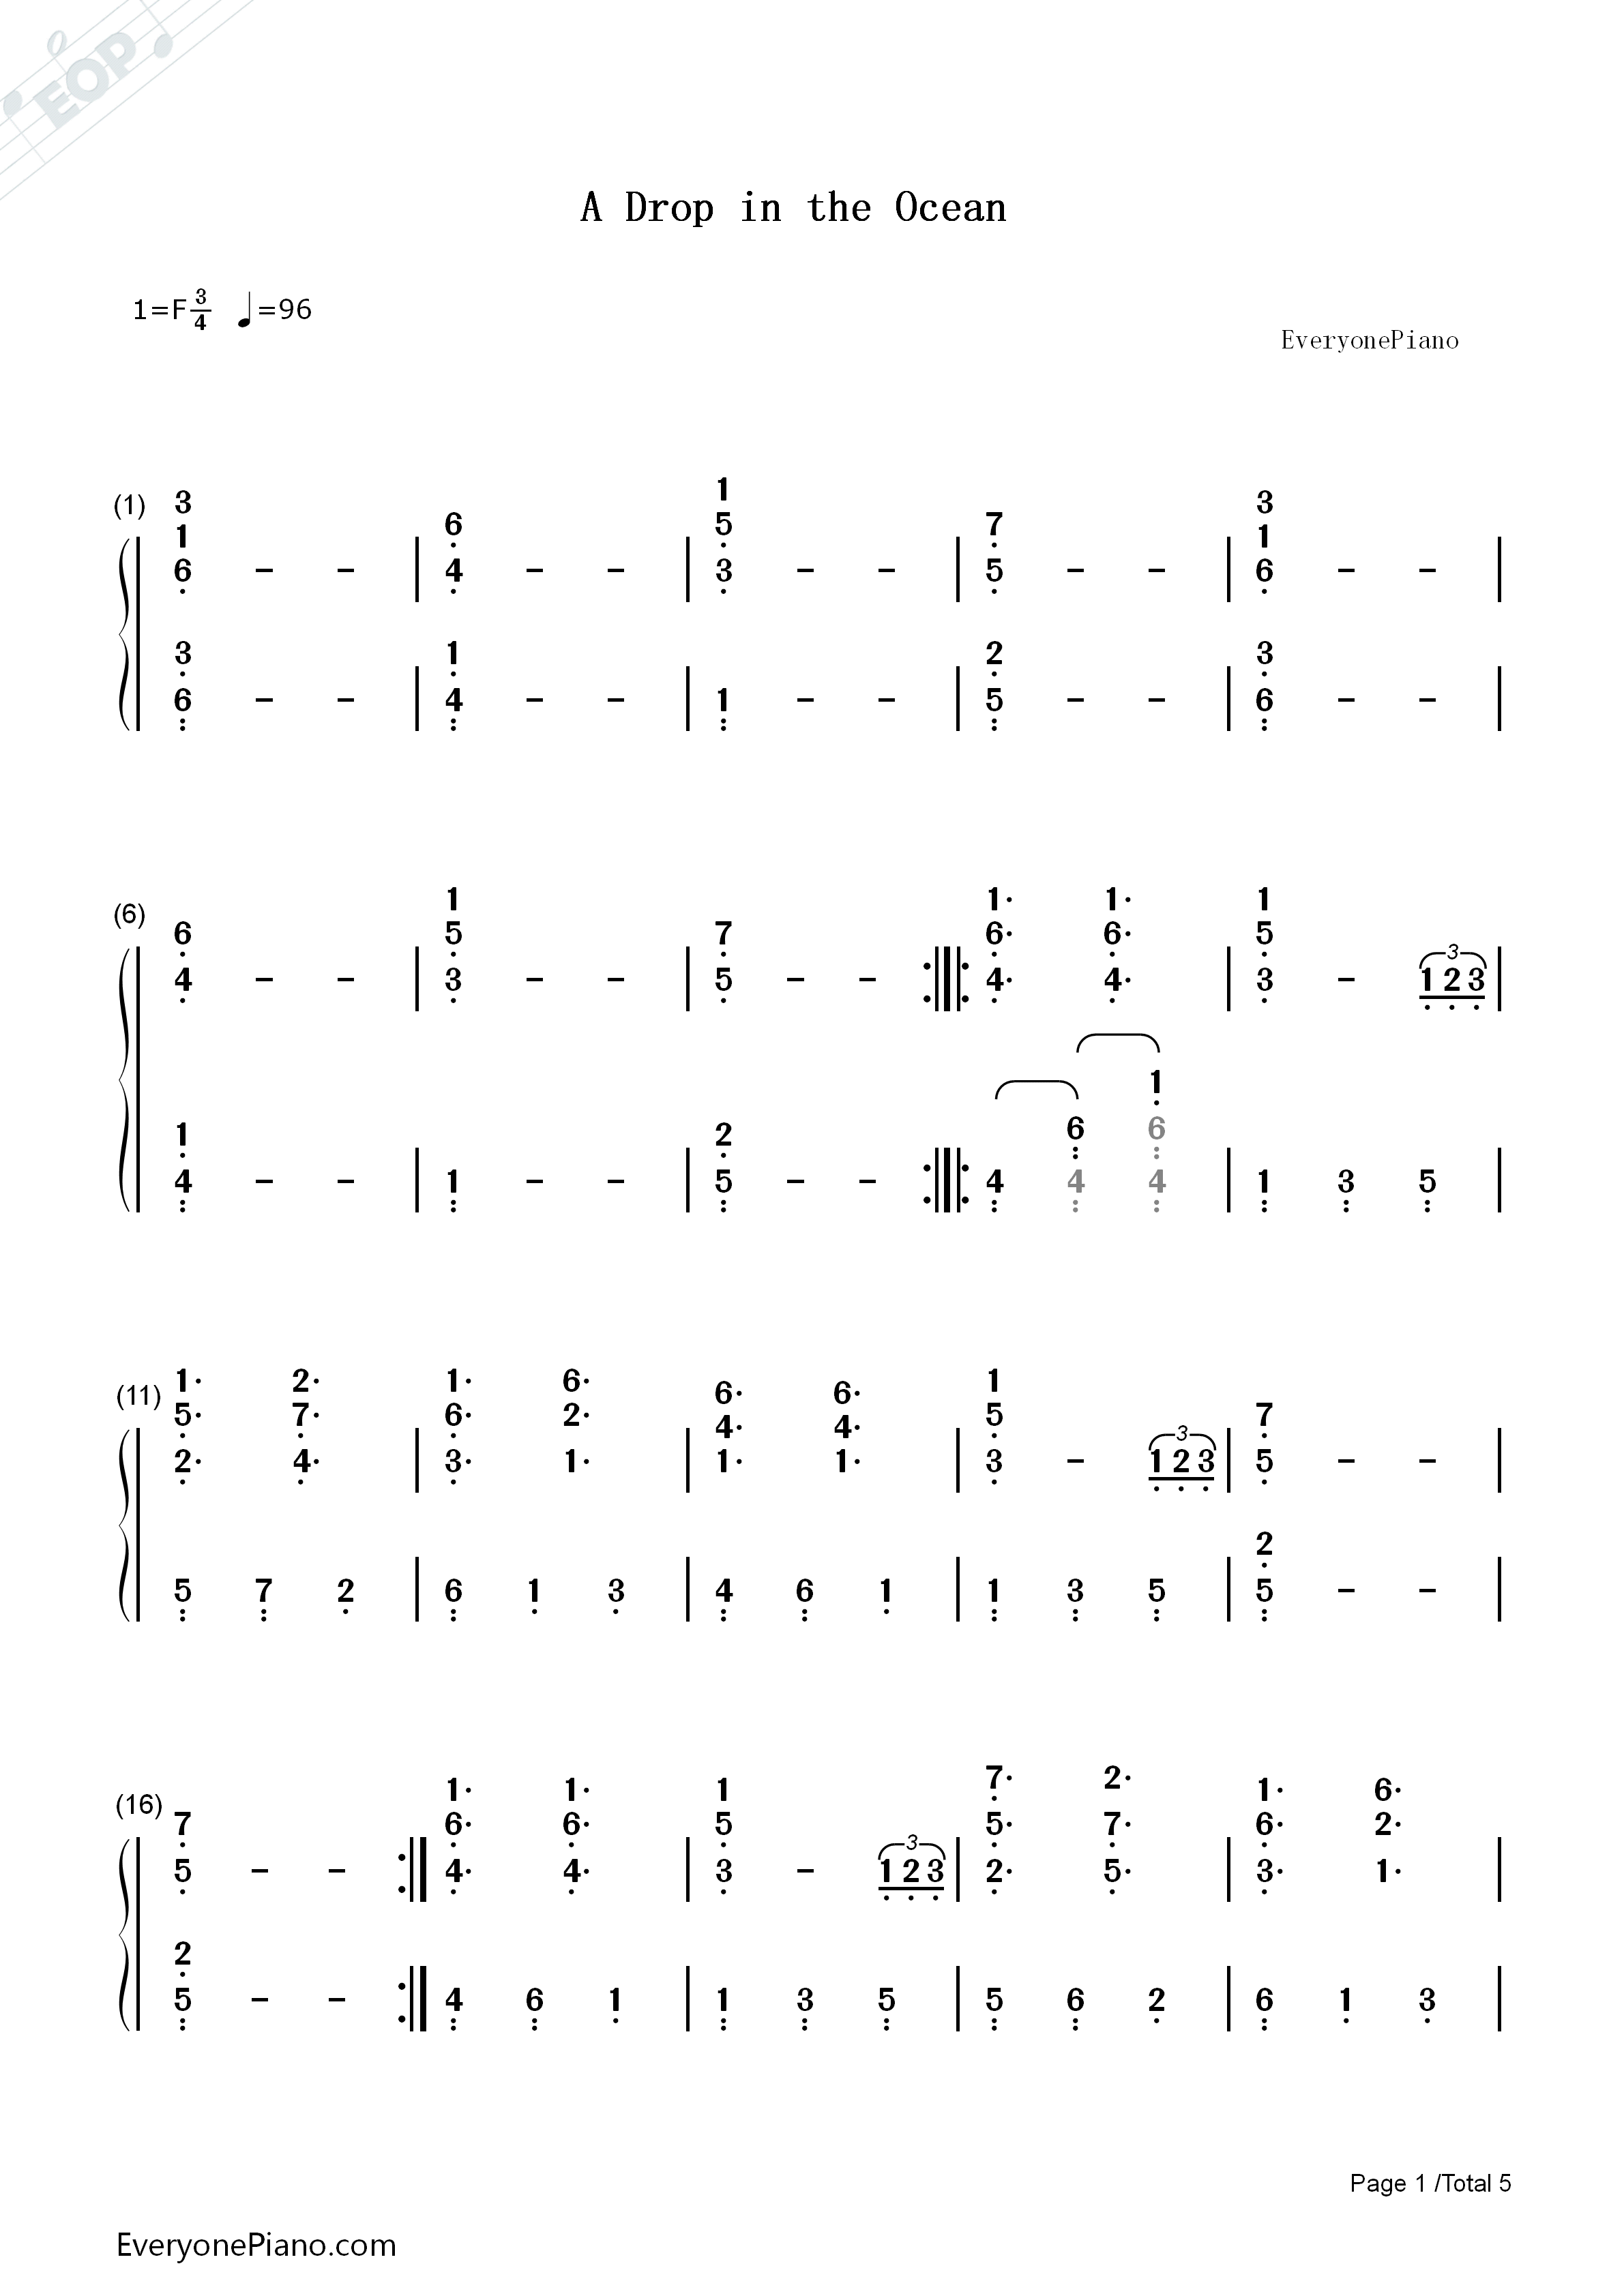 A drop in the ocean ron pope numbered musical notation preview 1 listen now print sheet a drop in the ocean ron pope numbered musical notation preview 1 hexwebz Image collections